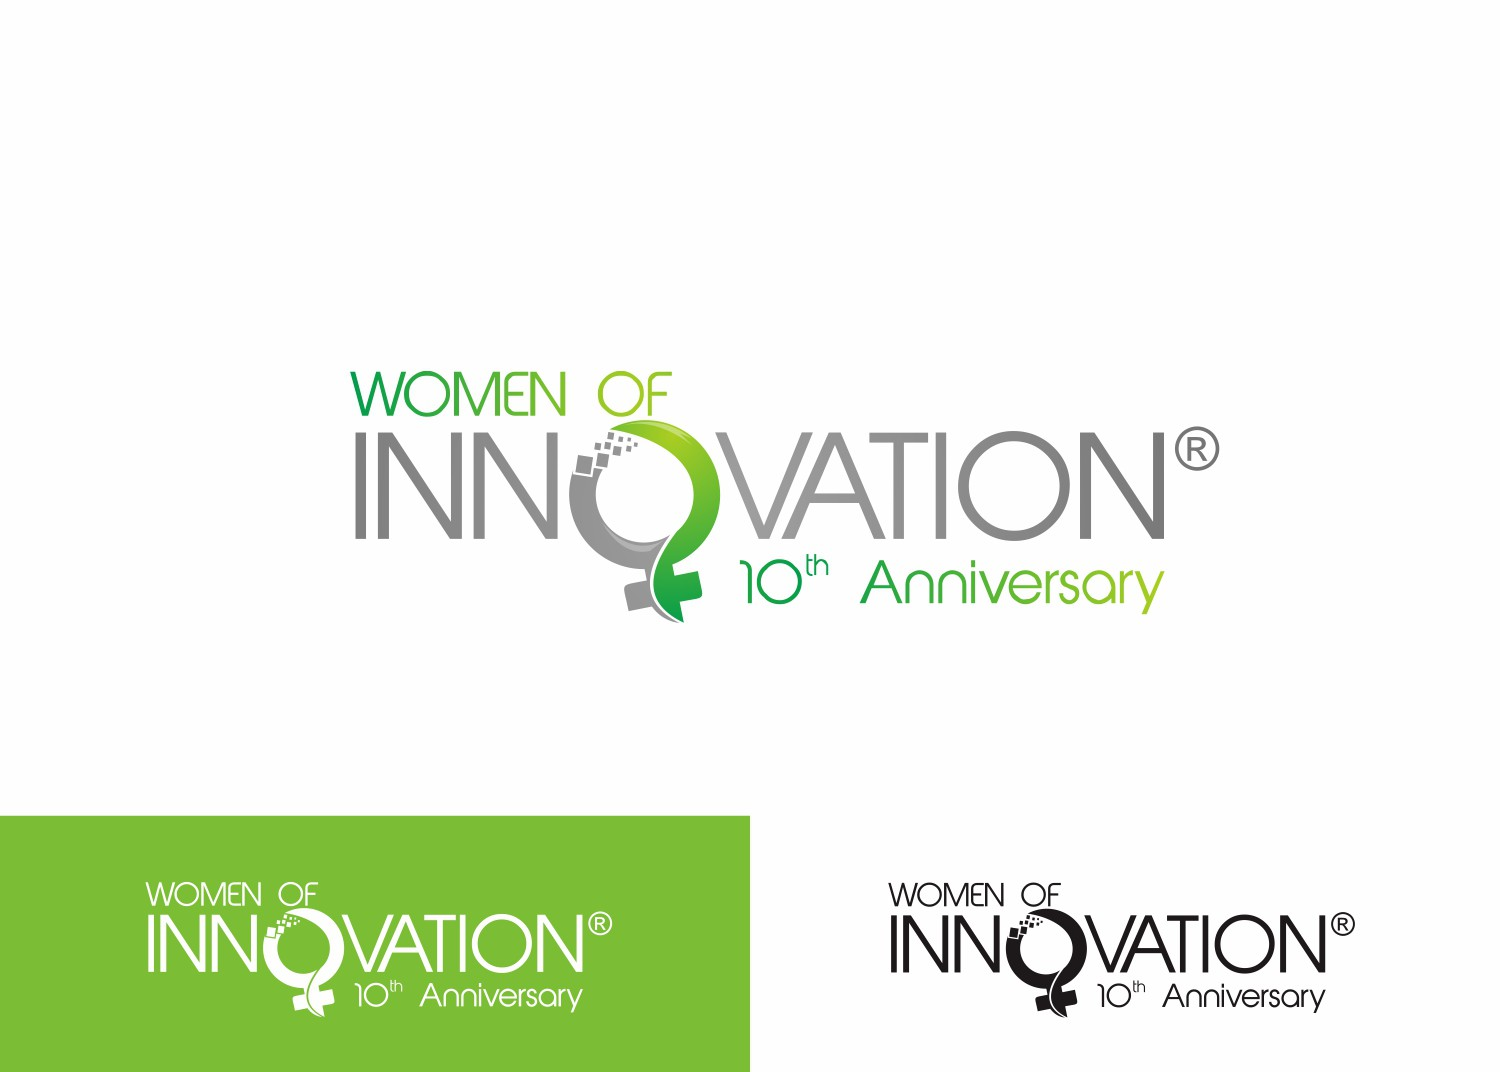 Help Women of Innovation(r)  with a new logo